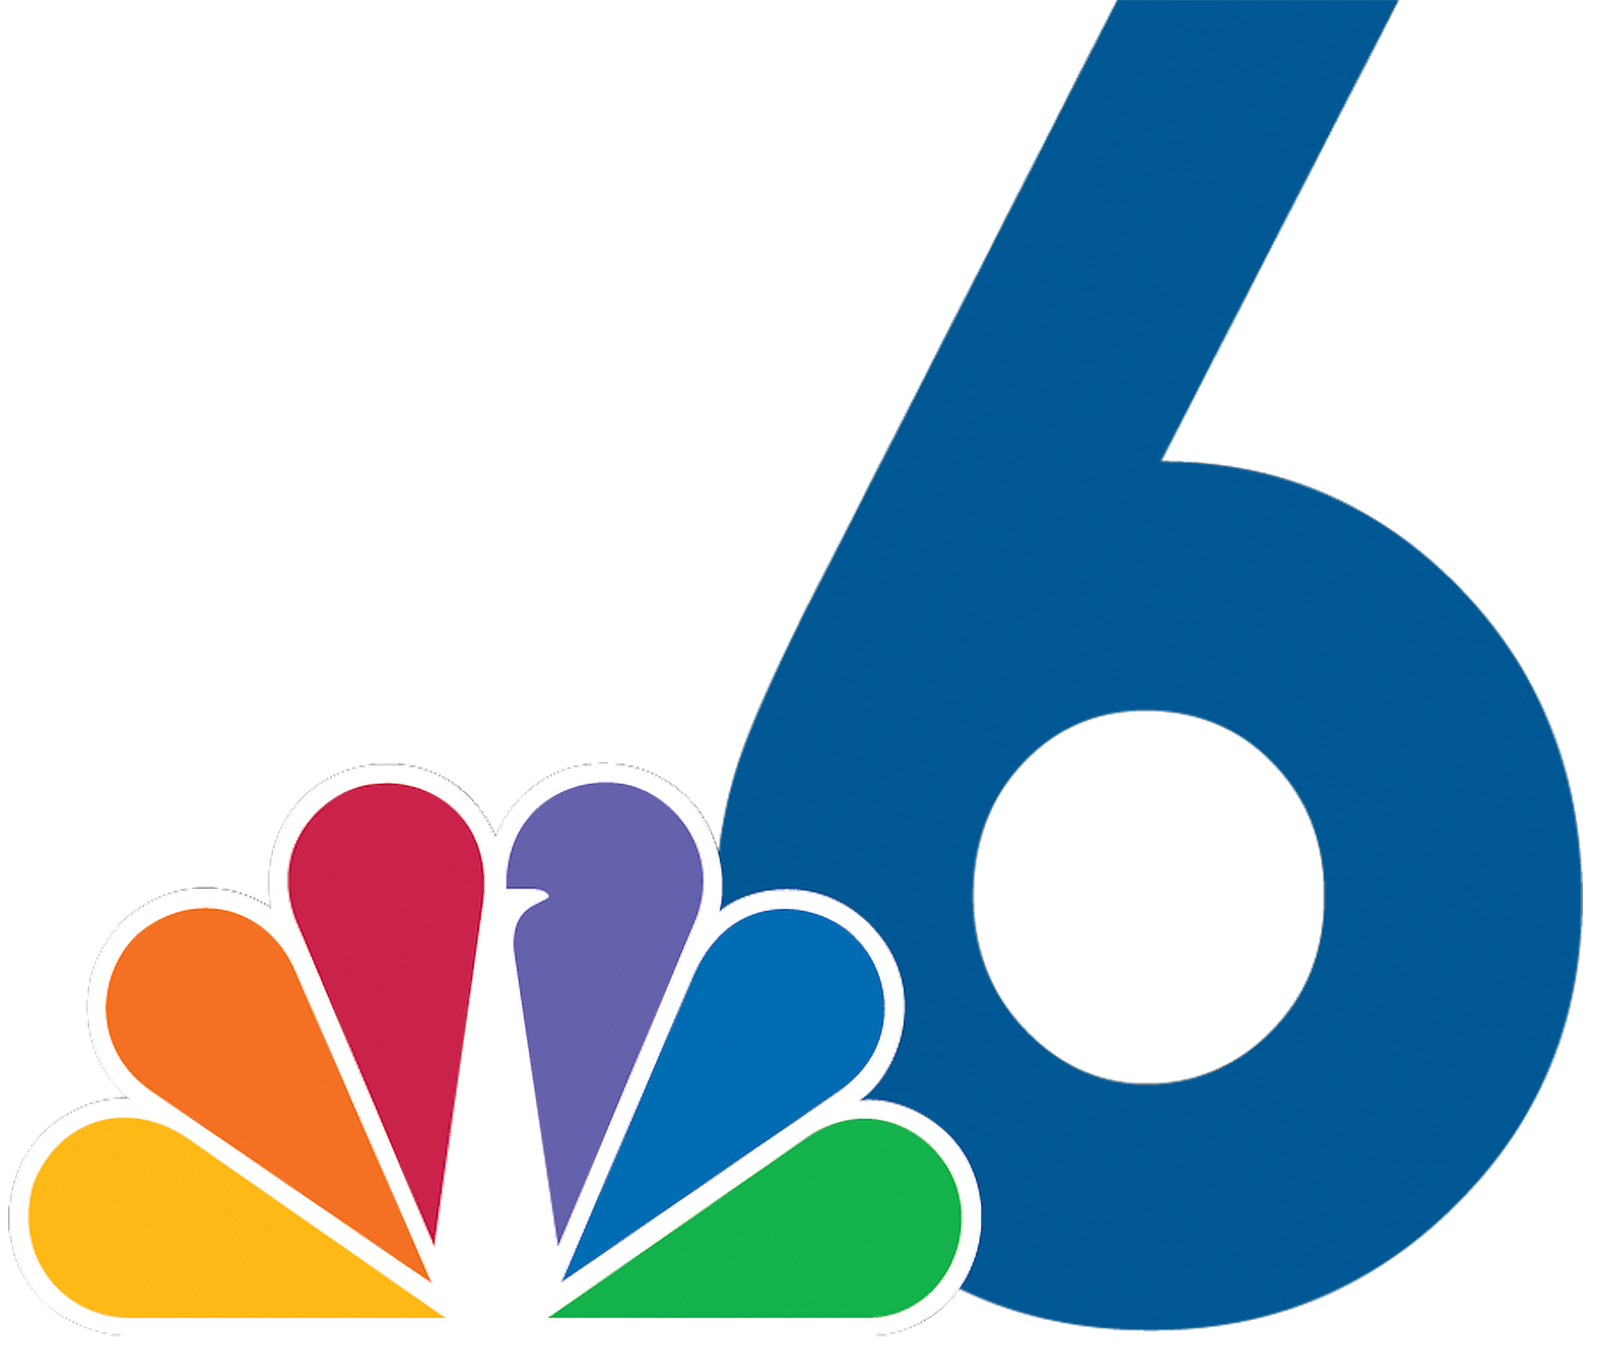 NBC 6 News Miami logo